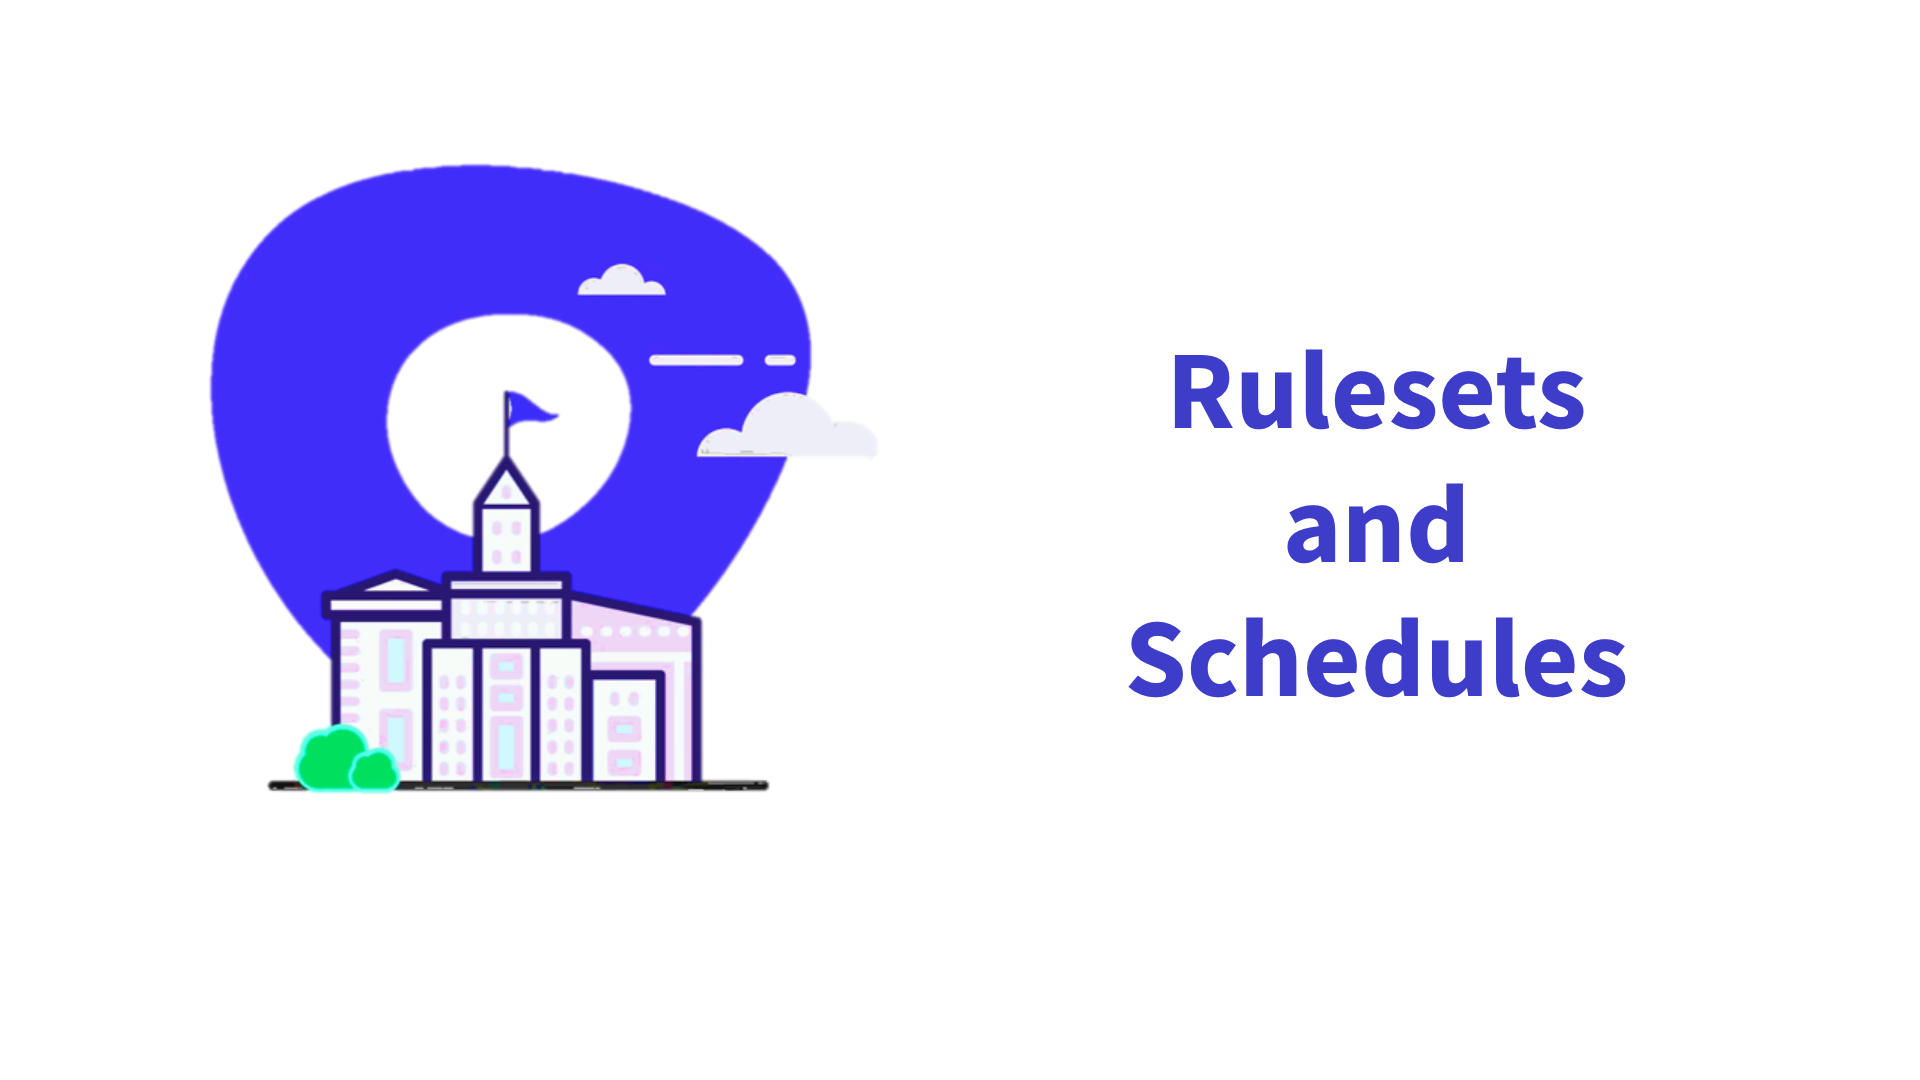 Rulesets and Schedules